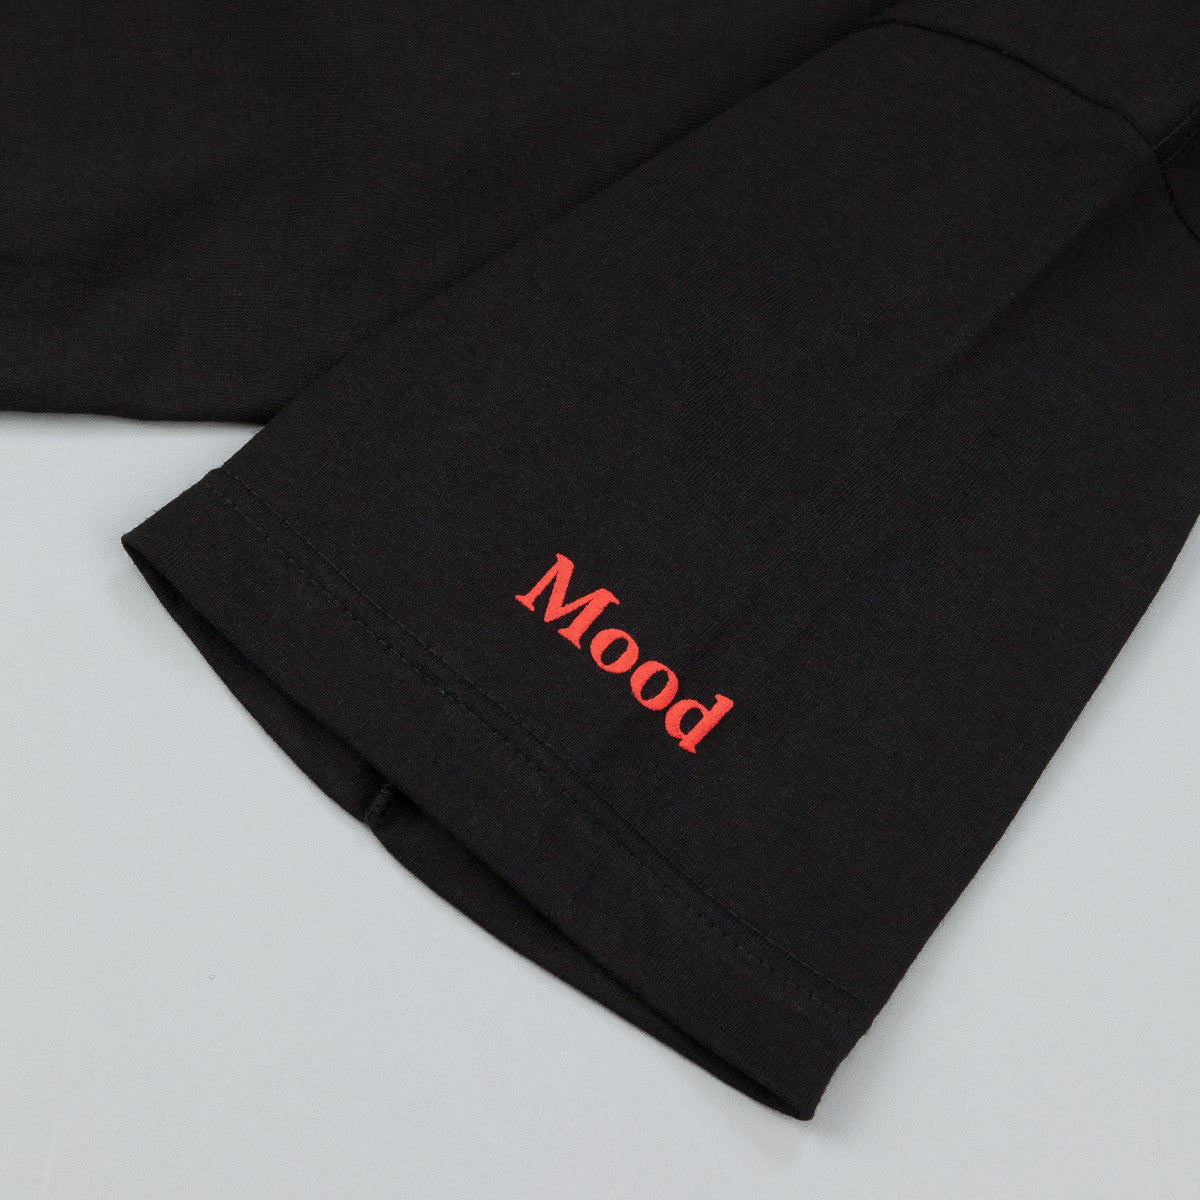 Mood NYC Wavy NYC T-Shirt - Black